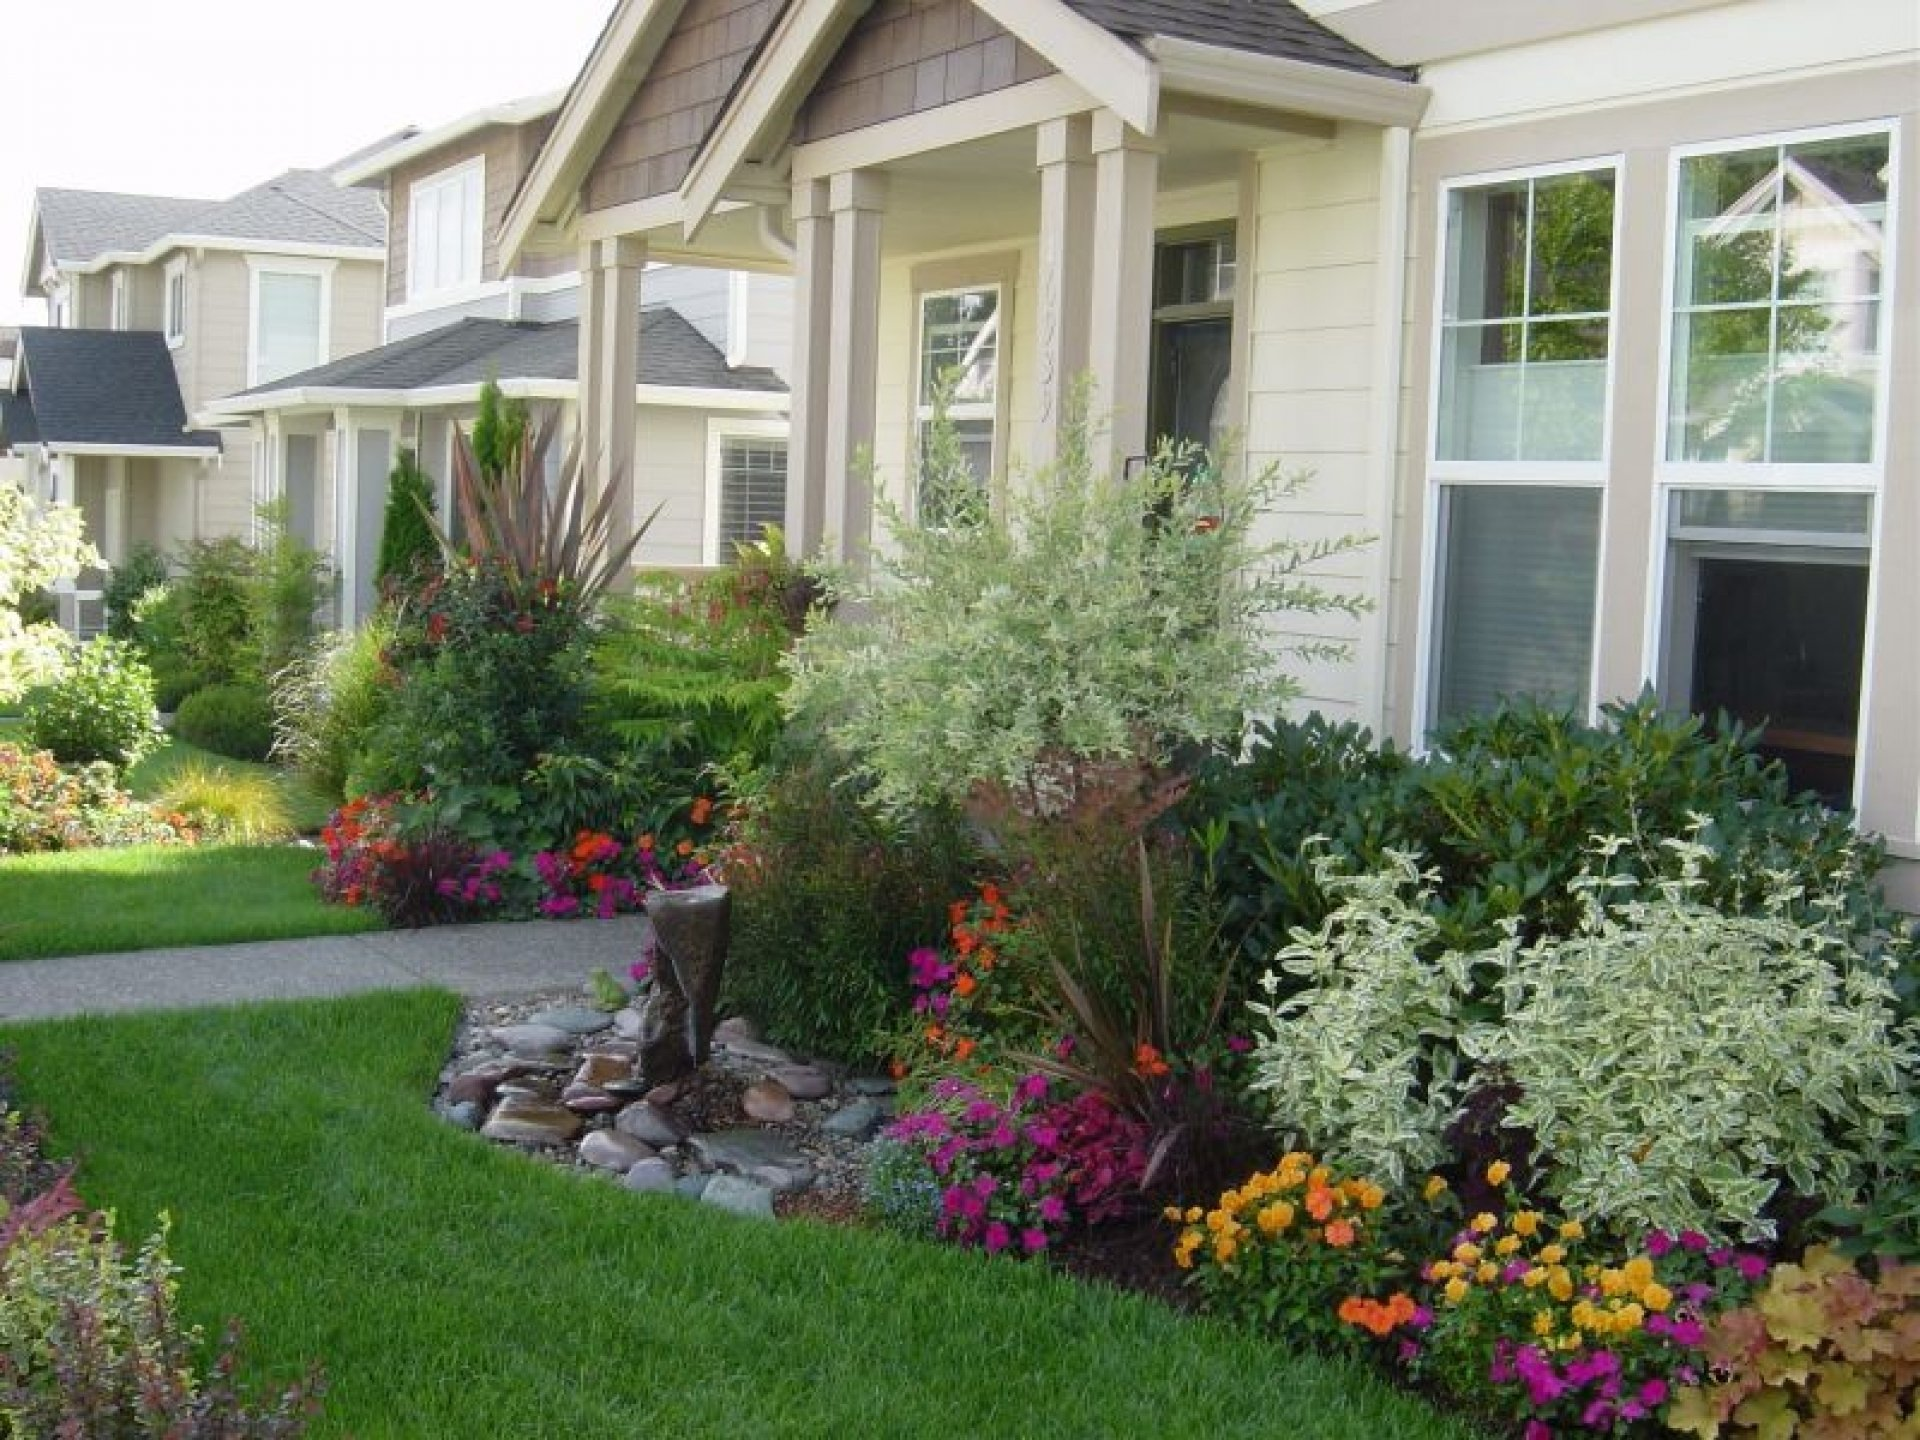 10 Great Landscaping Ideas For Front Of House best landscaping ideas for front house design ideas and decor 2020